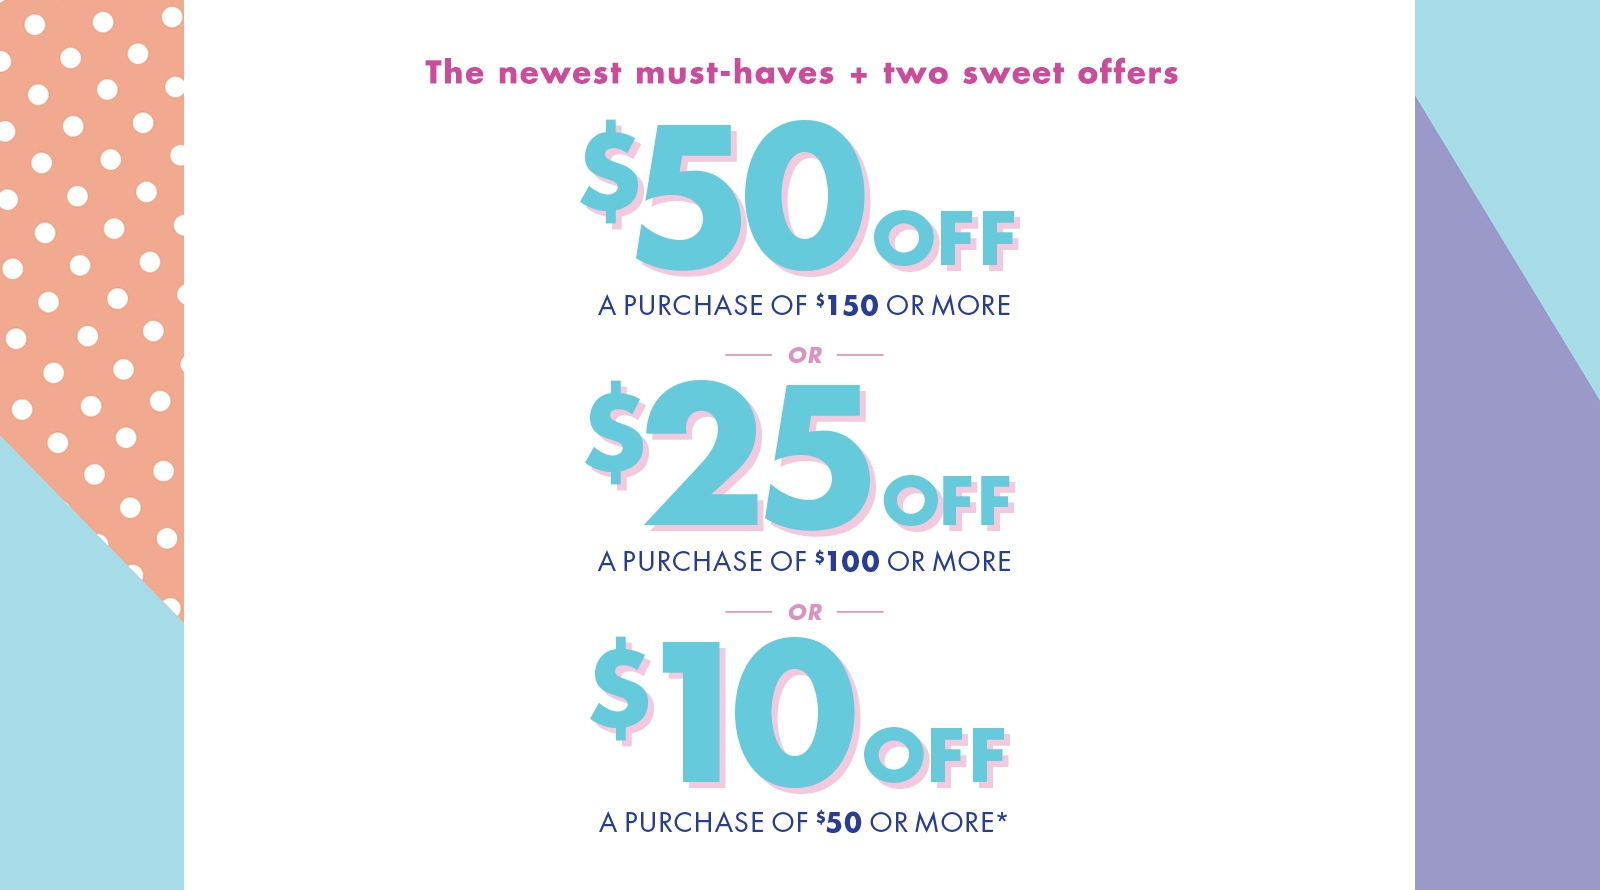 $50 Off A Purchase of $150 Or More, $25 Off A Purchase of $100 Or More, $10 Off A Purchase of $50 Or More